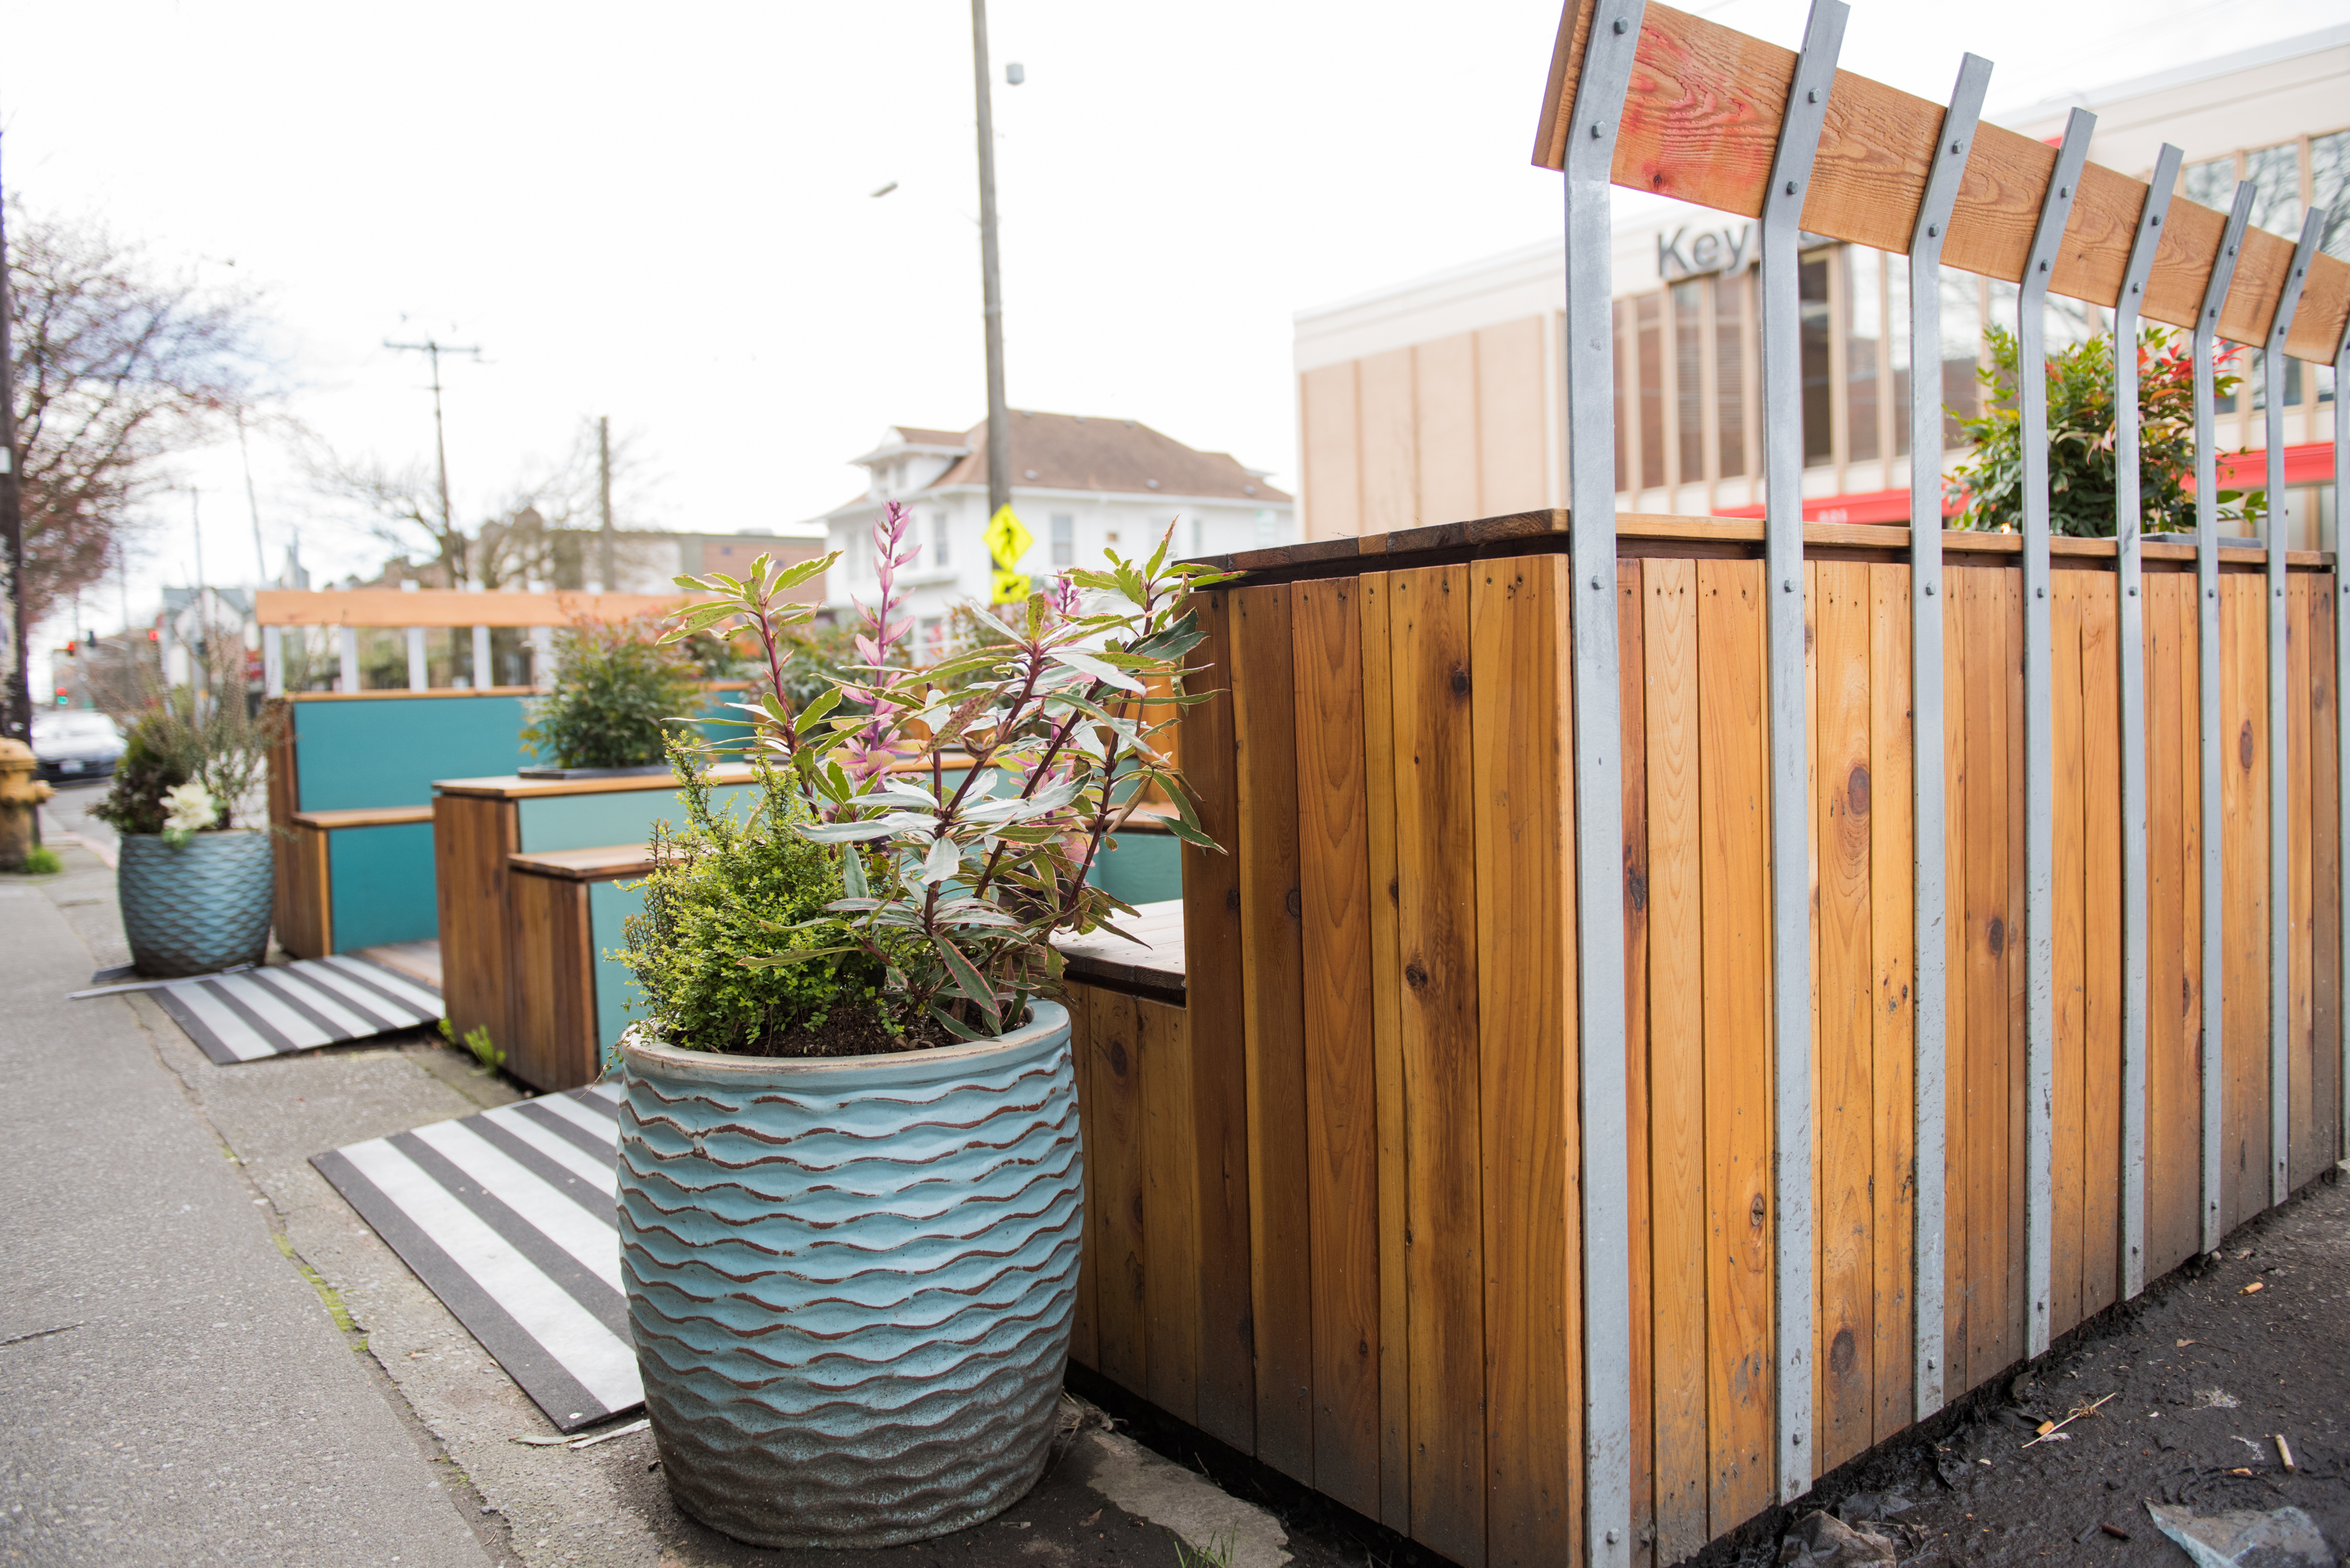 Sugar Plum Parklet: This parklet has us thinking of warmer days, sitting outside with a vegan confection and enjoying the sunshine and mingling with friends and passersby. (Image: Natalia Dotto)